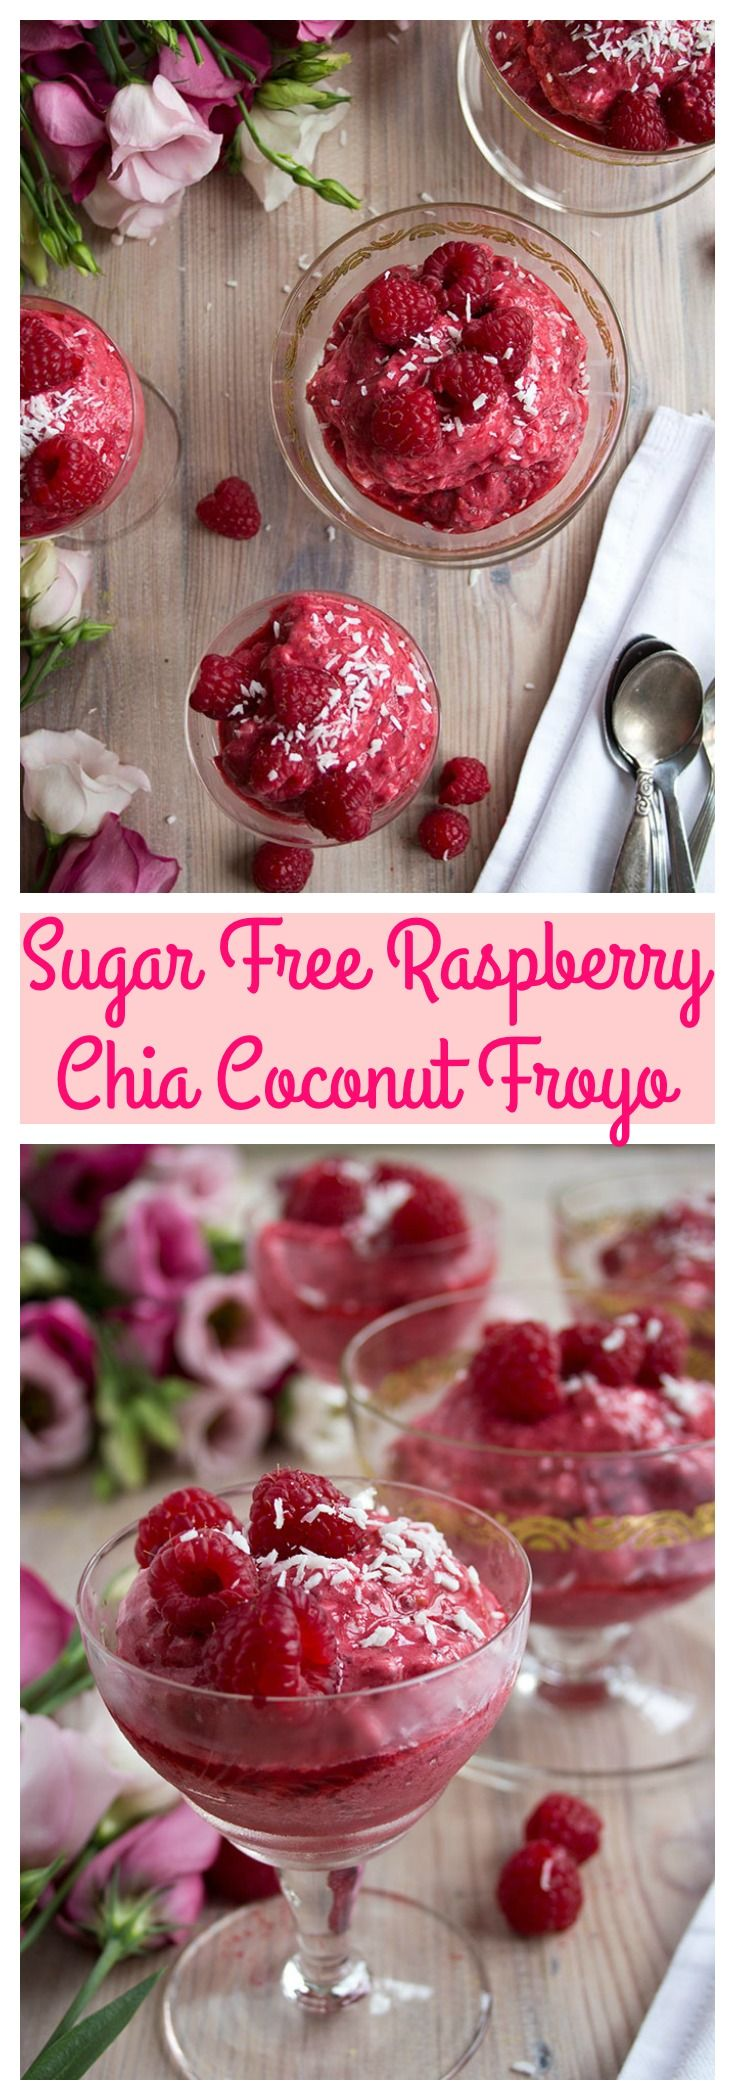 An insanely fruity and refreshing sugar free frozen yoghurt: Crown your meal with a Raspberry Chia Coconut Froyo